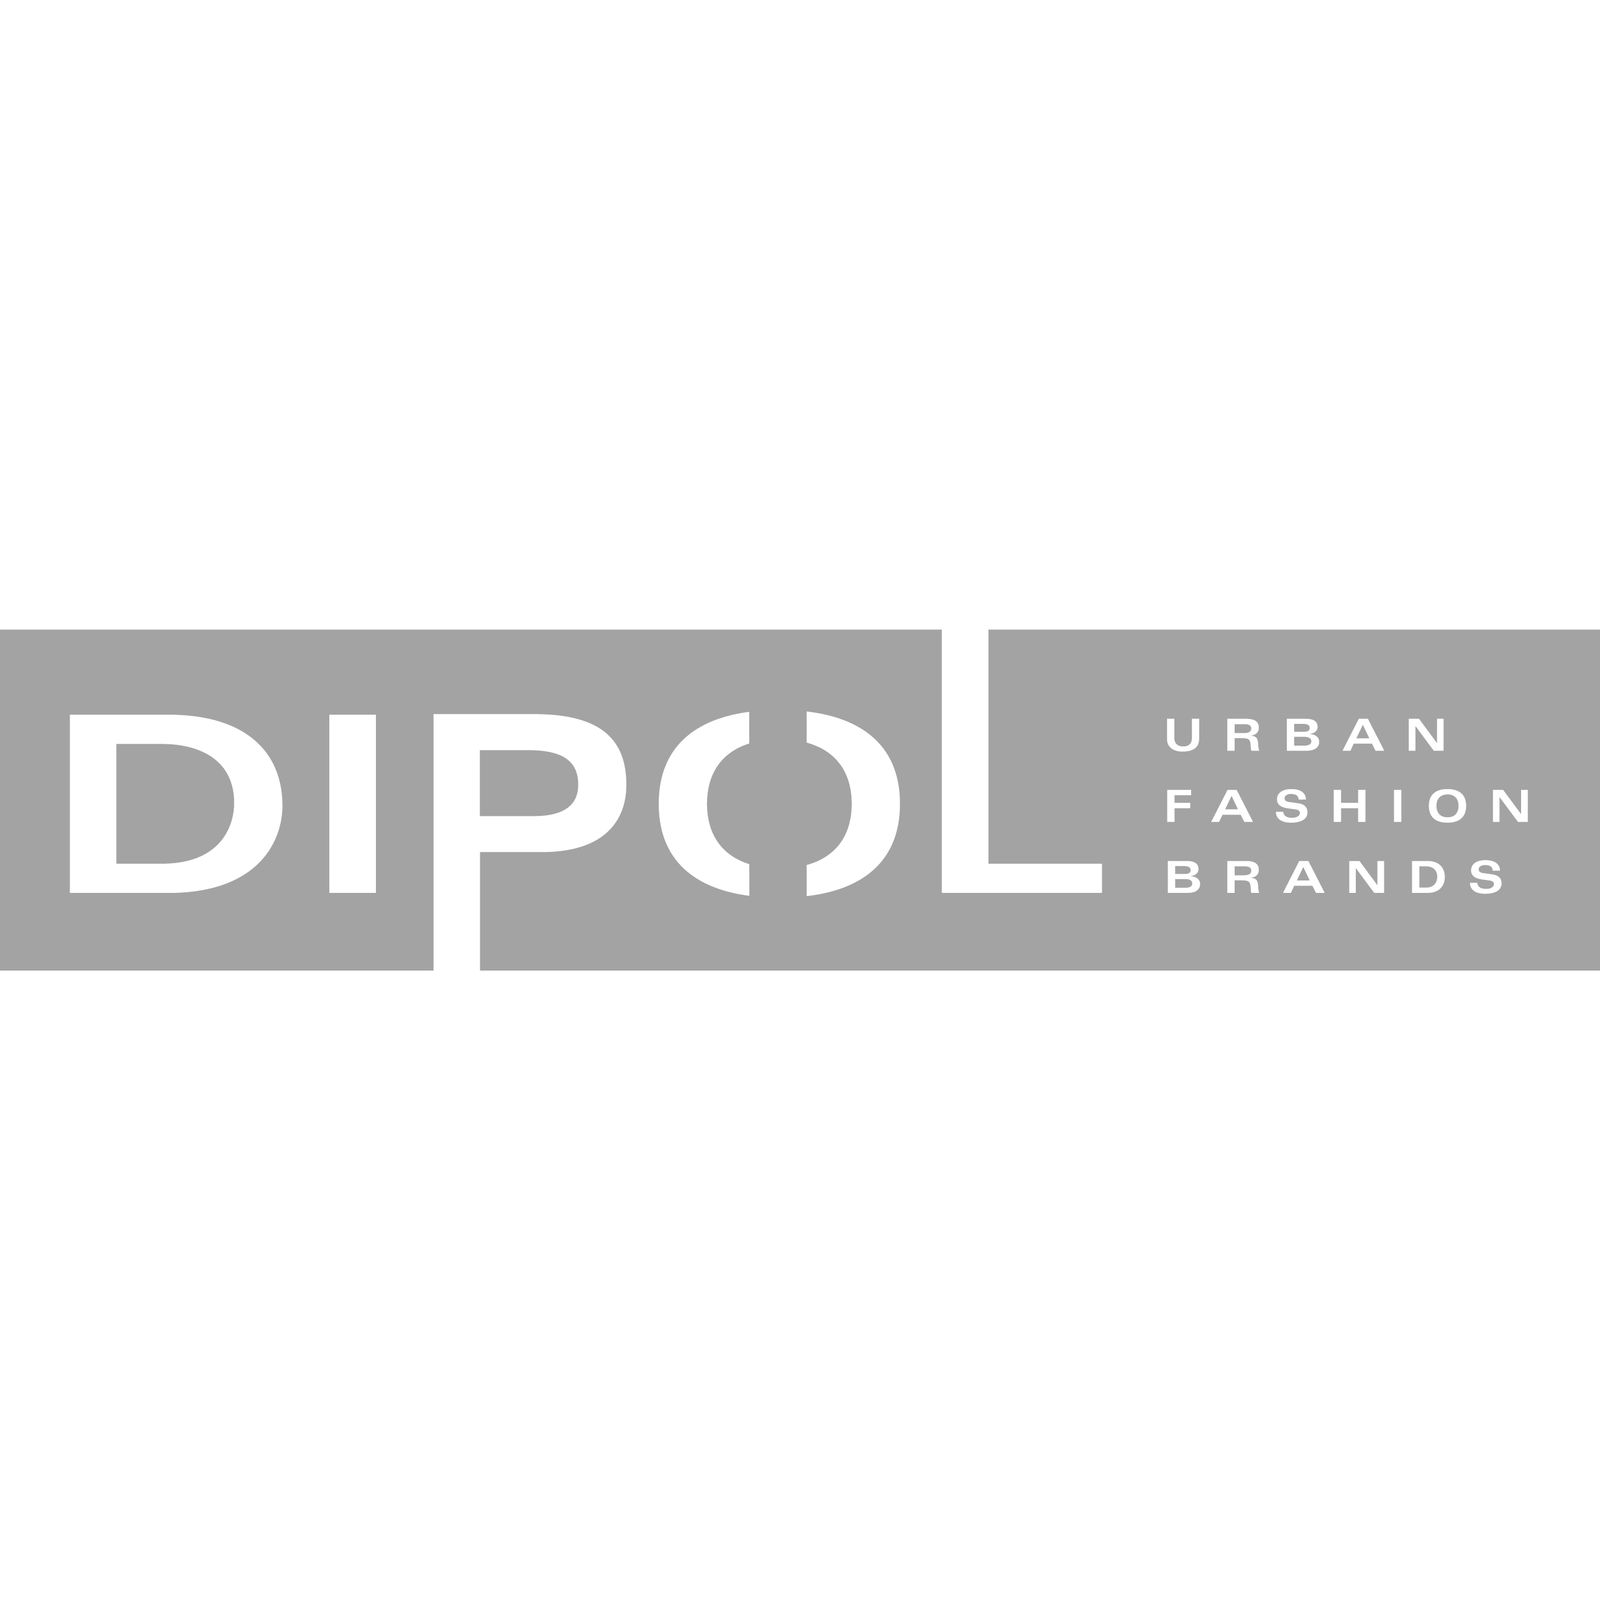 dipol - urban fashion brands in Mannheim (Bild 1)